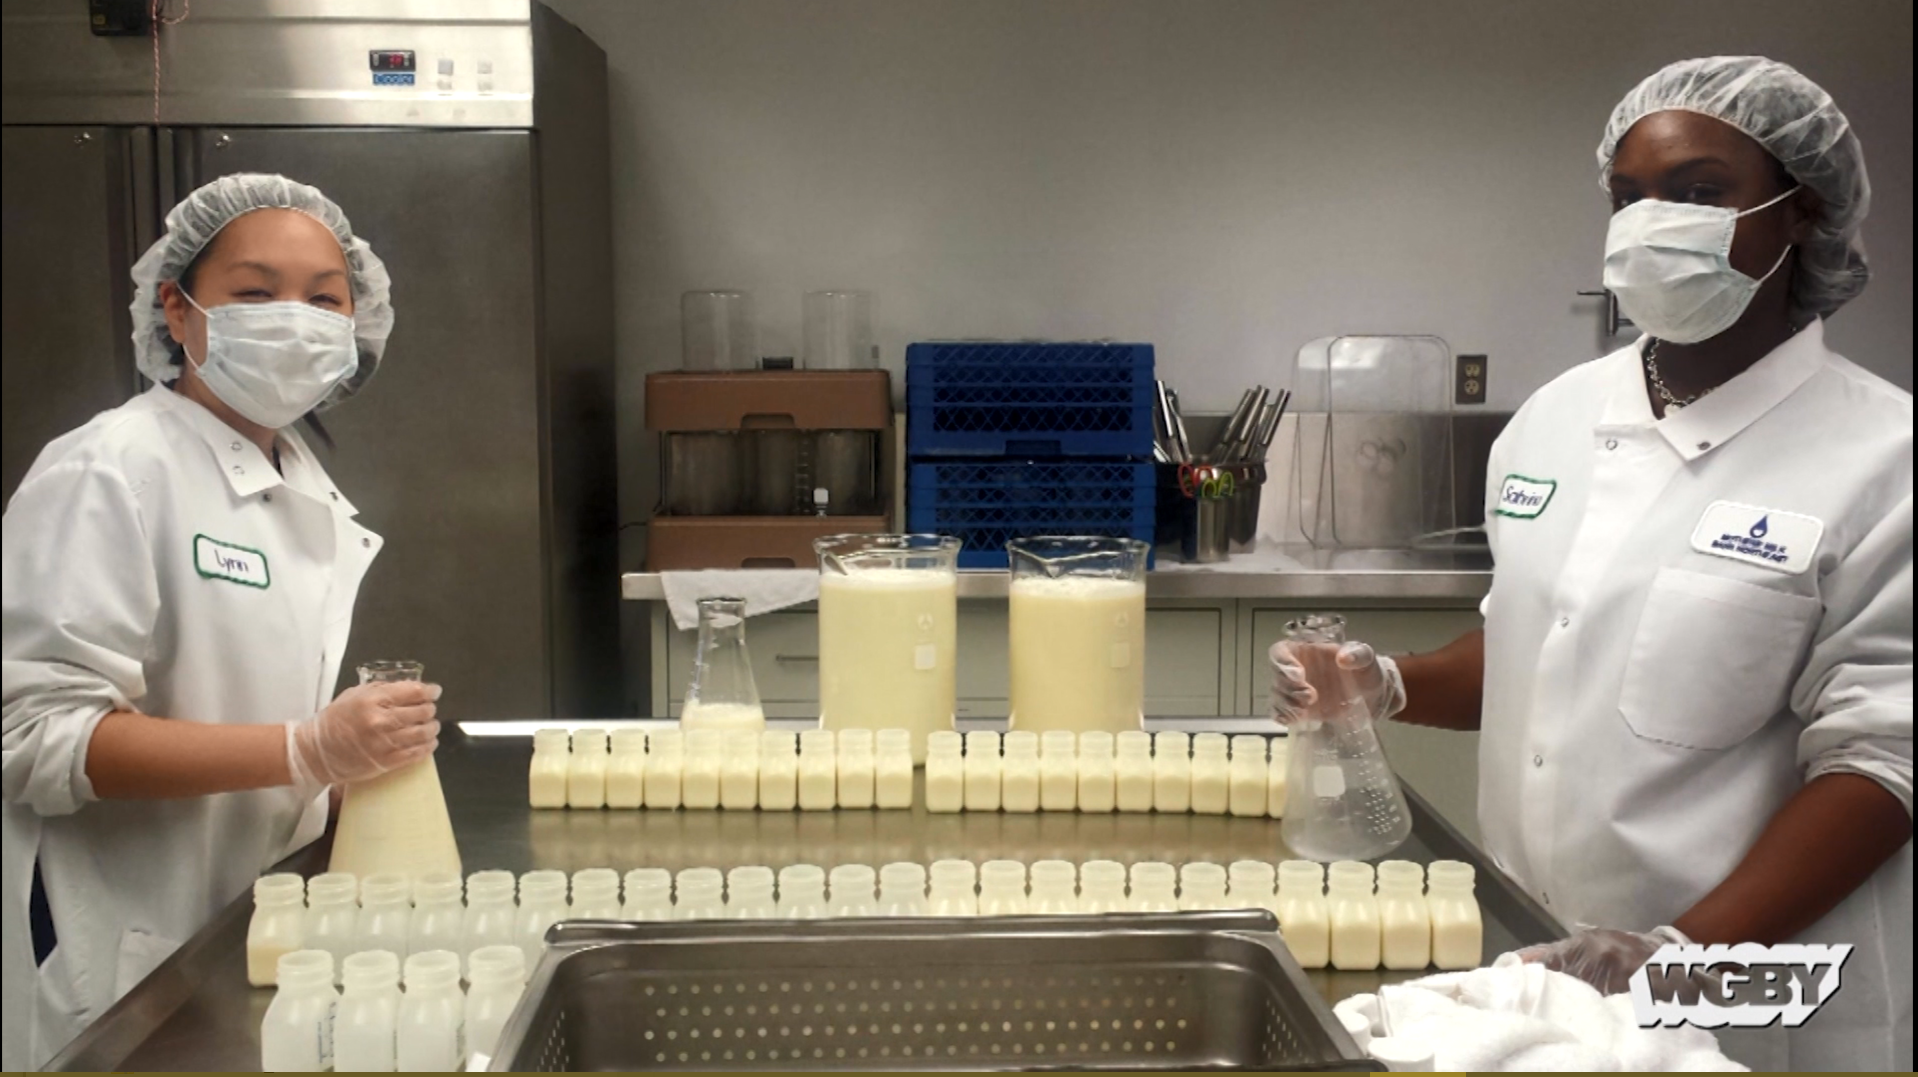 Breast Milk Depots and Donation Banks for Families